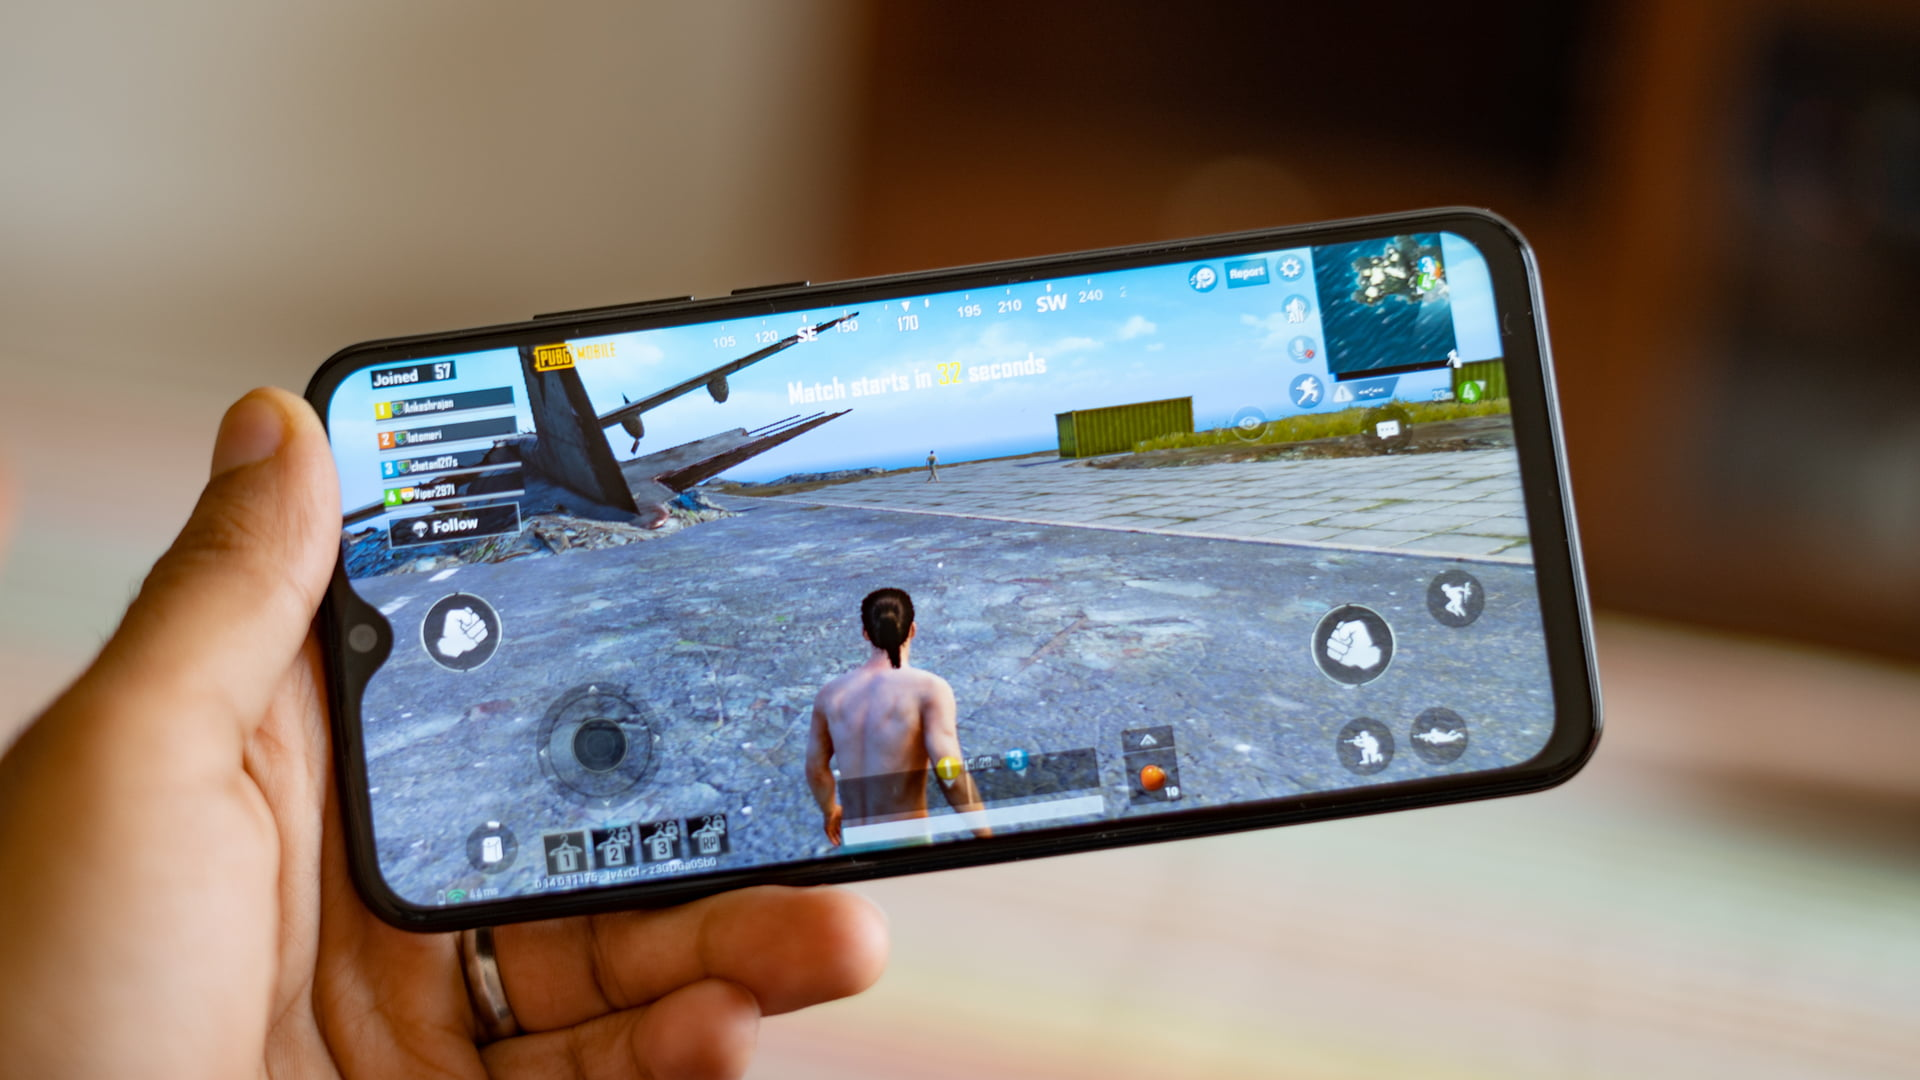 5 Best Games Like PUBG Mobile for 6 GB Ram Android Phones